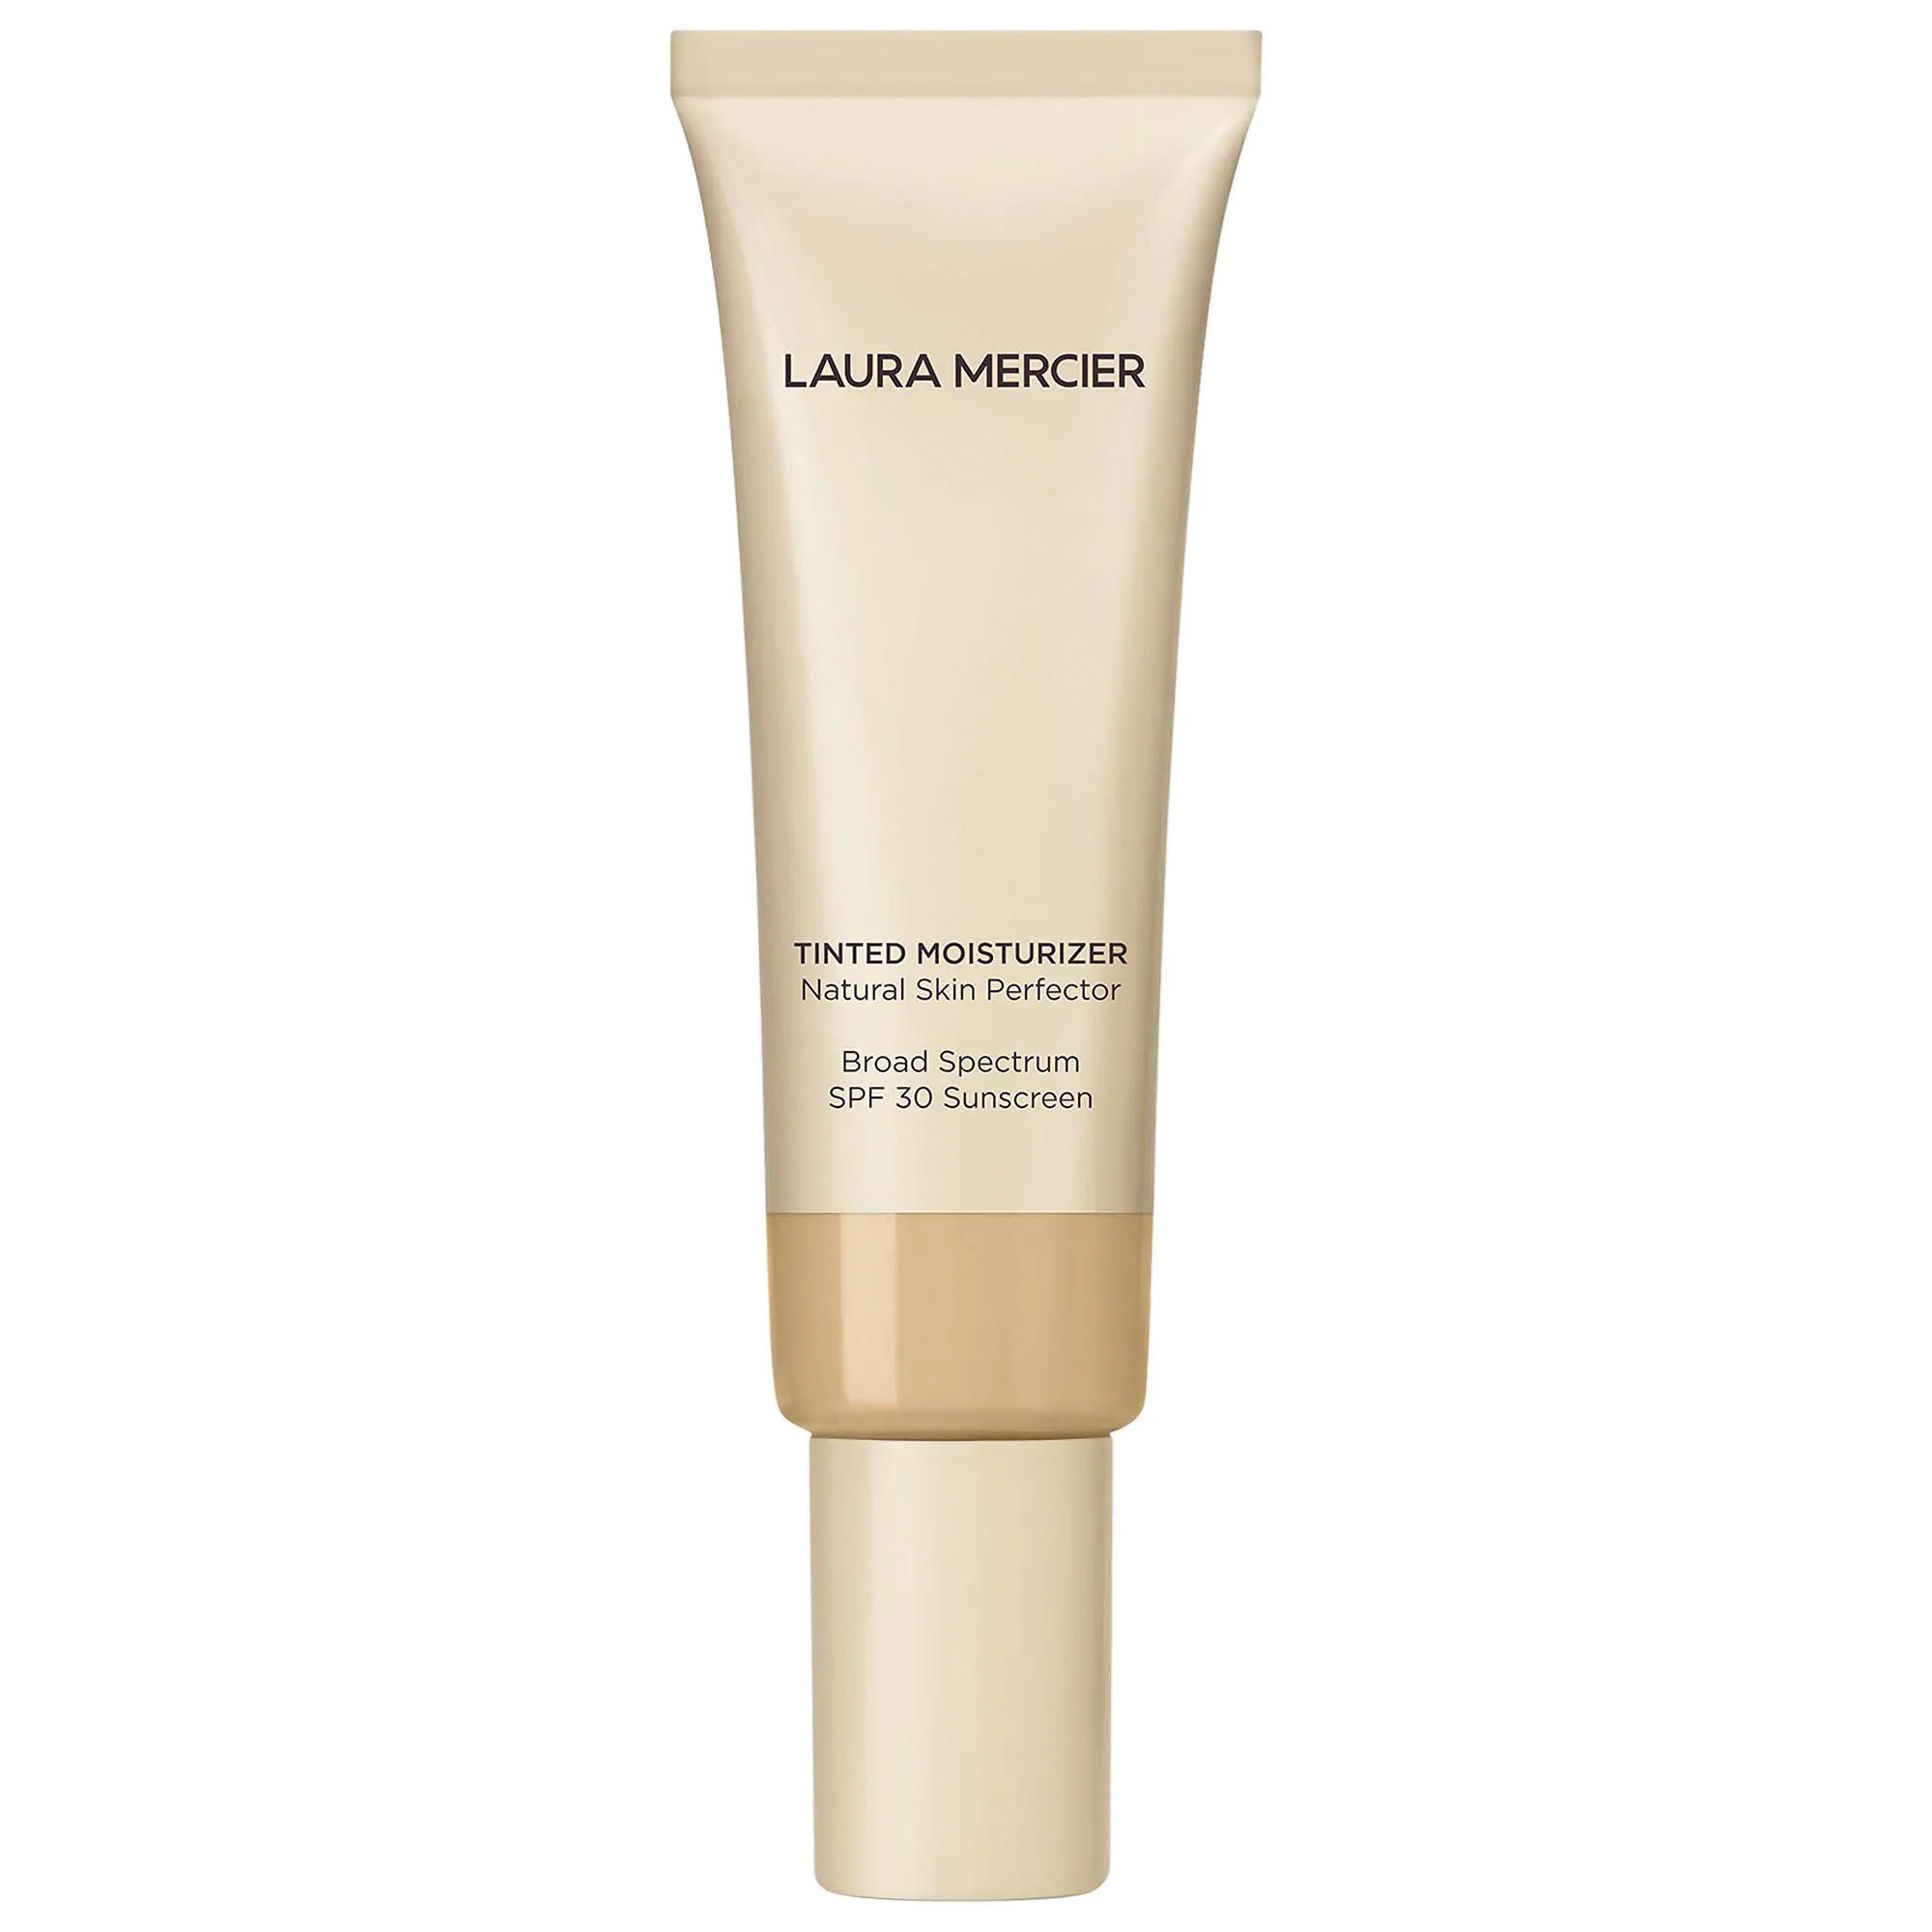 Laura Mercier Tinter Moisturizer Natural Skin Perfector Natural 2W1